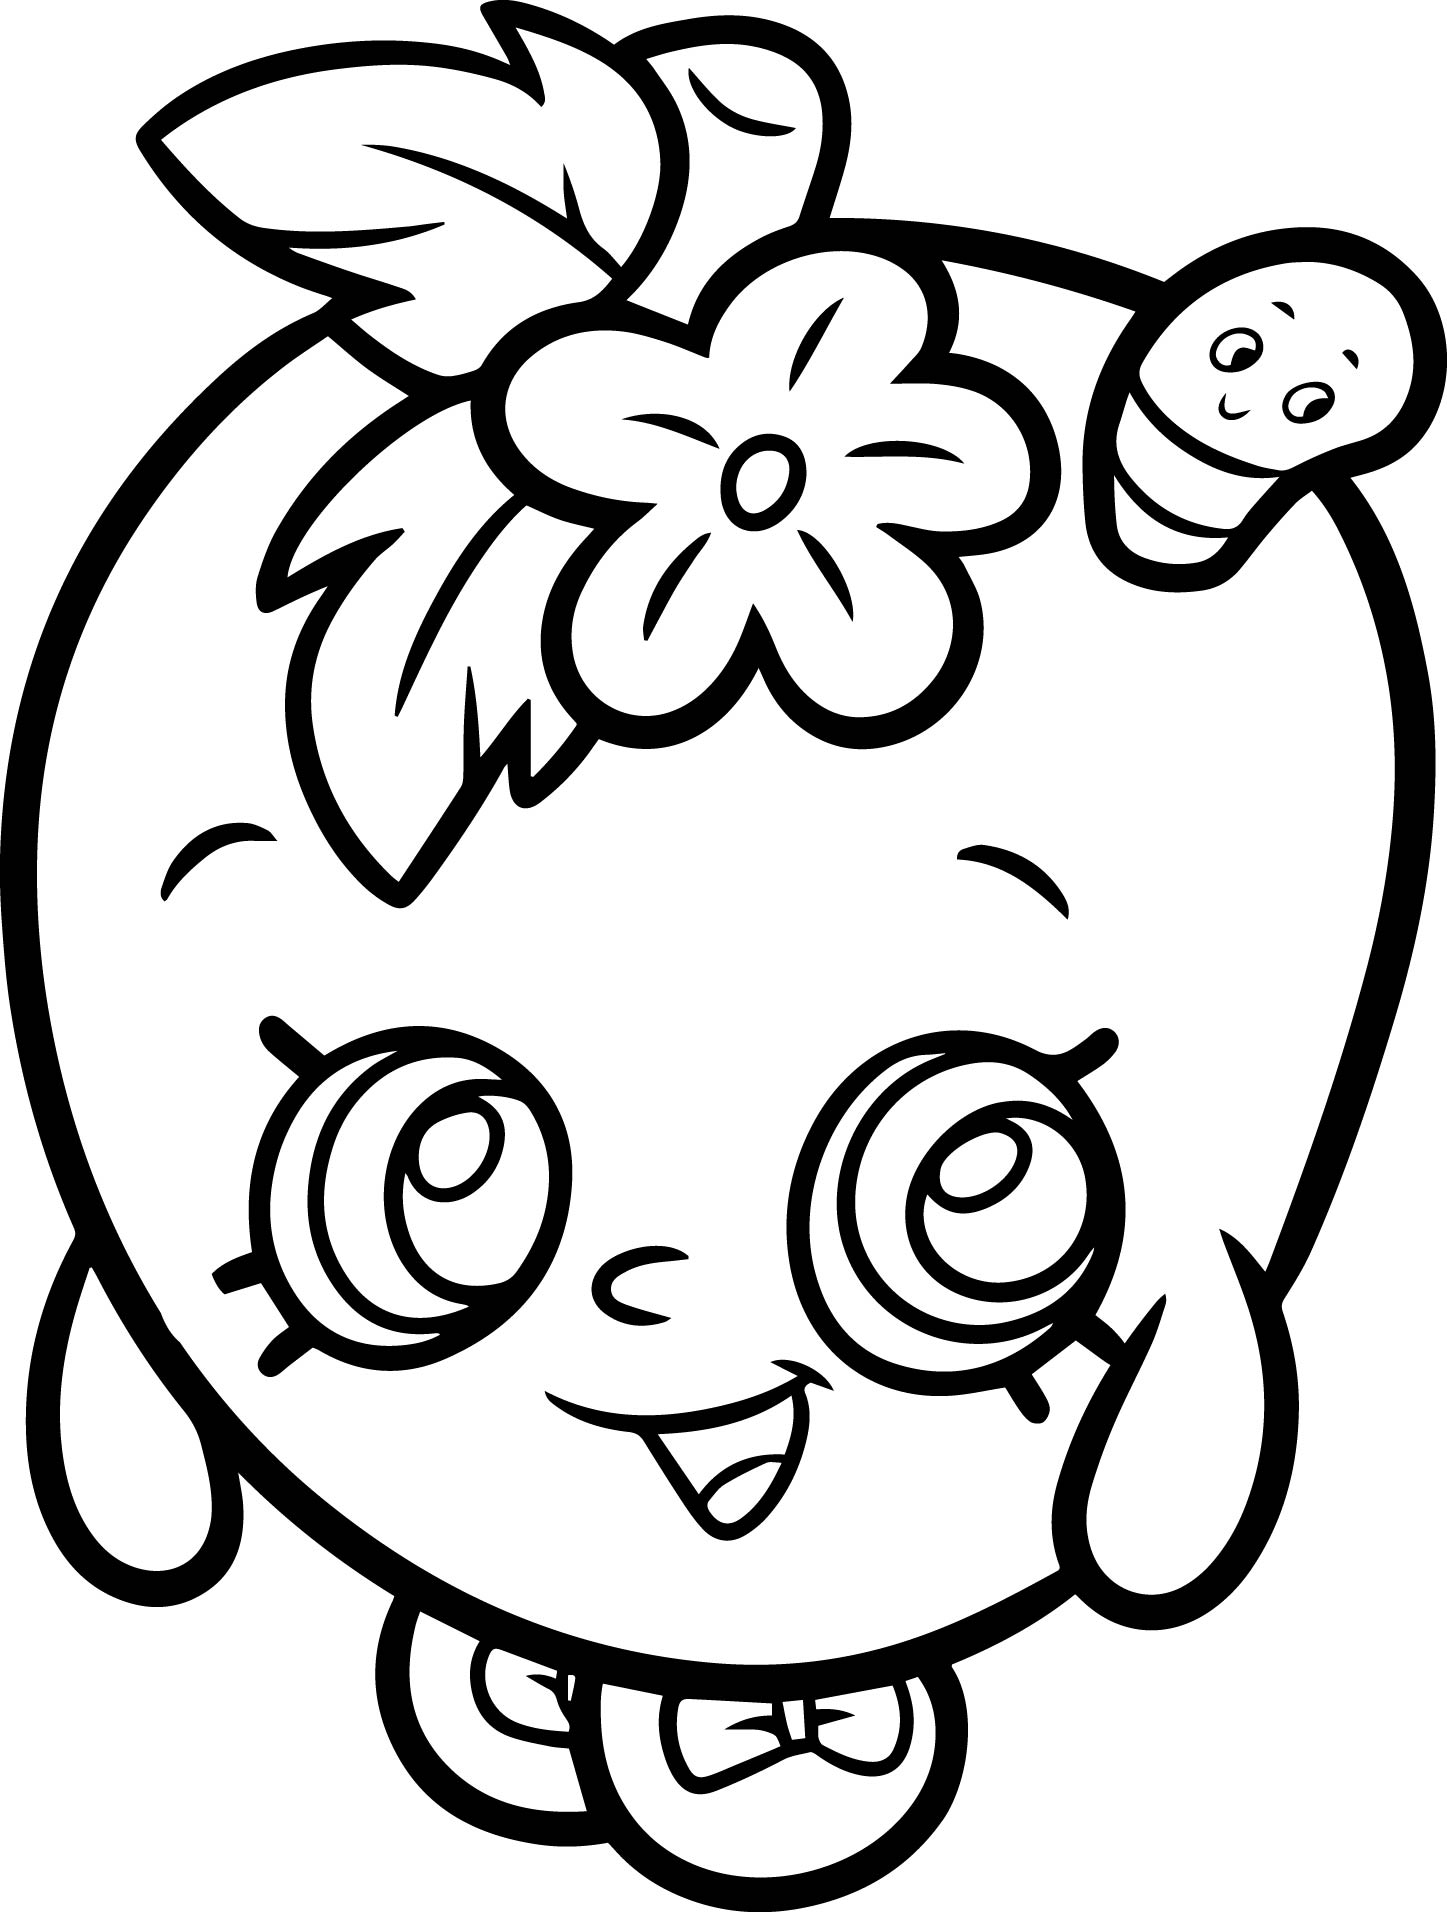 Apple Blossom From Shopkins Coloring Page